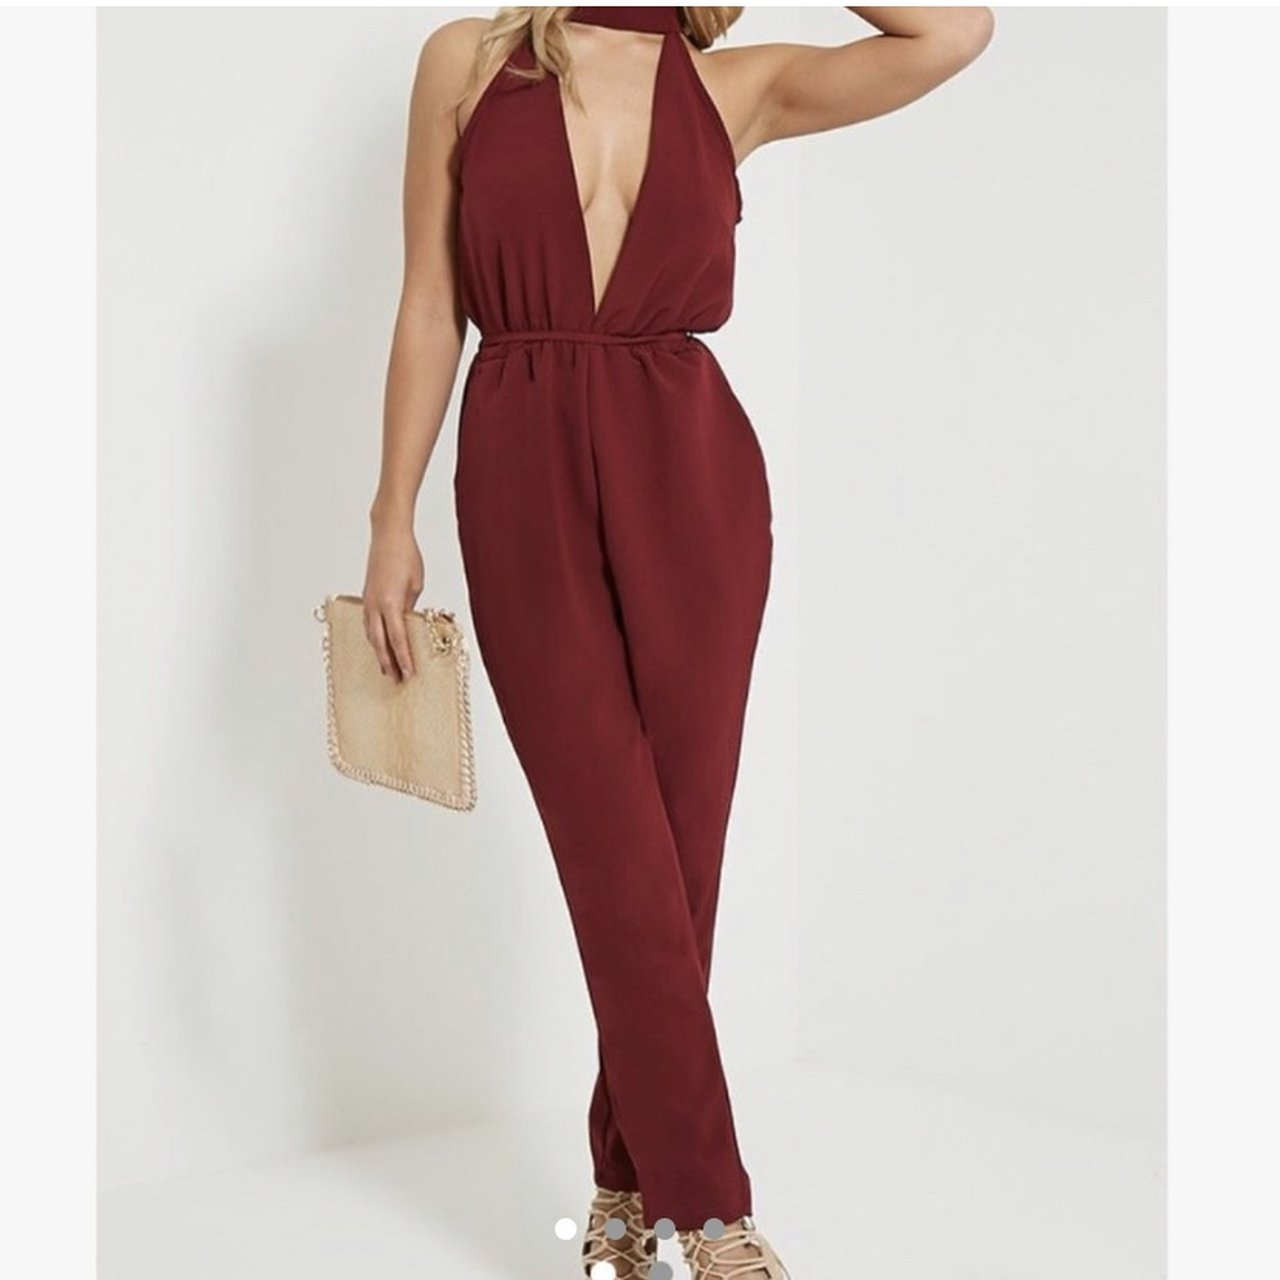 1434cafb16f4 Burgundy pretty little thing jumpsuit